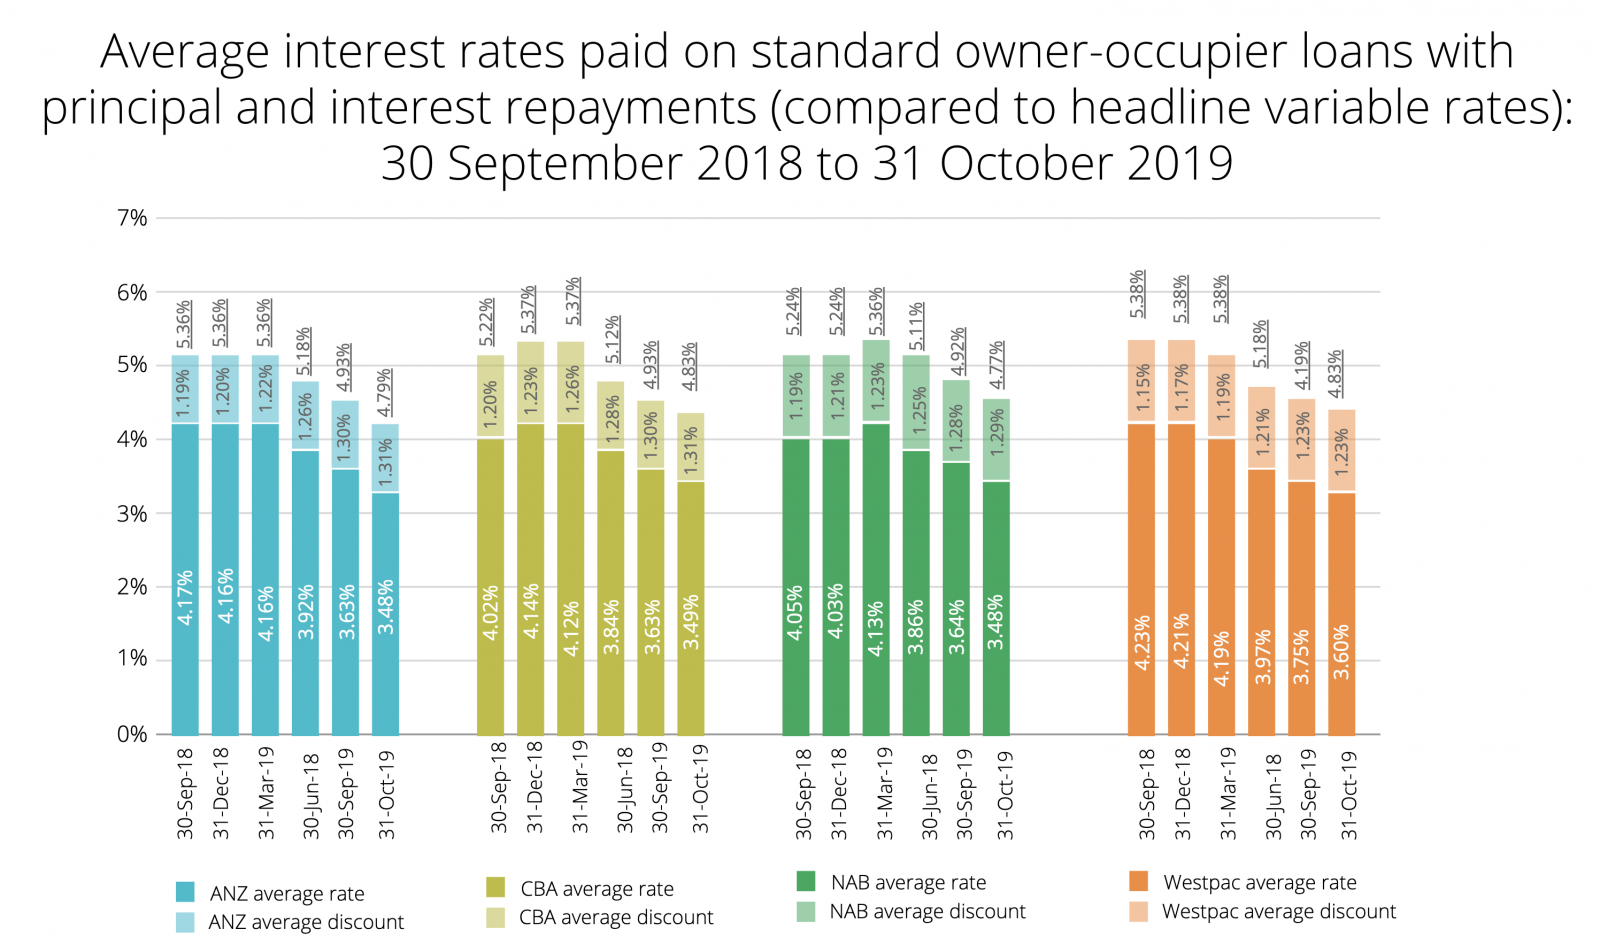 Average interest rates paid on owner-occupier loans with principal and interest repayments